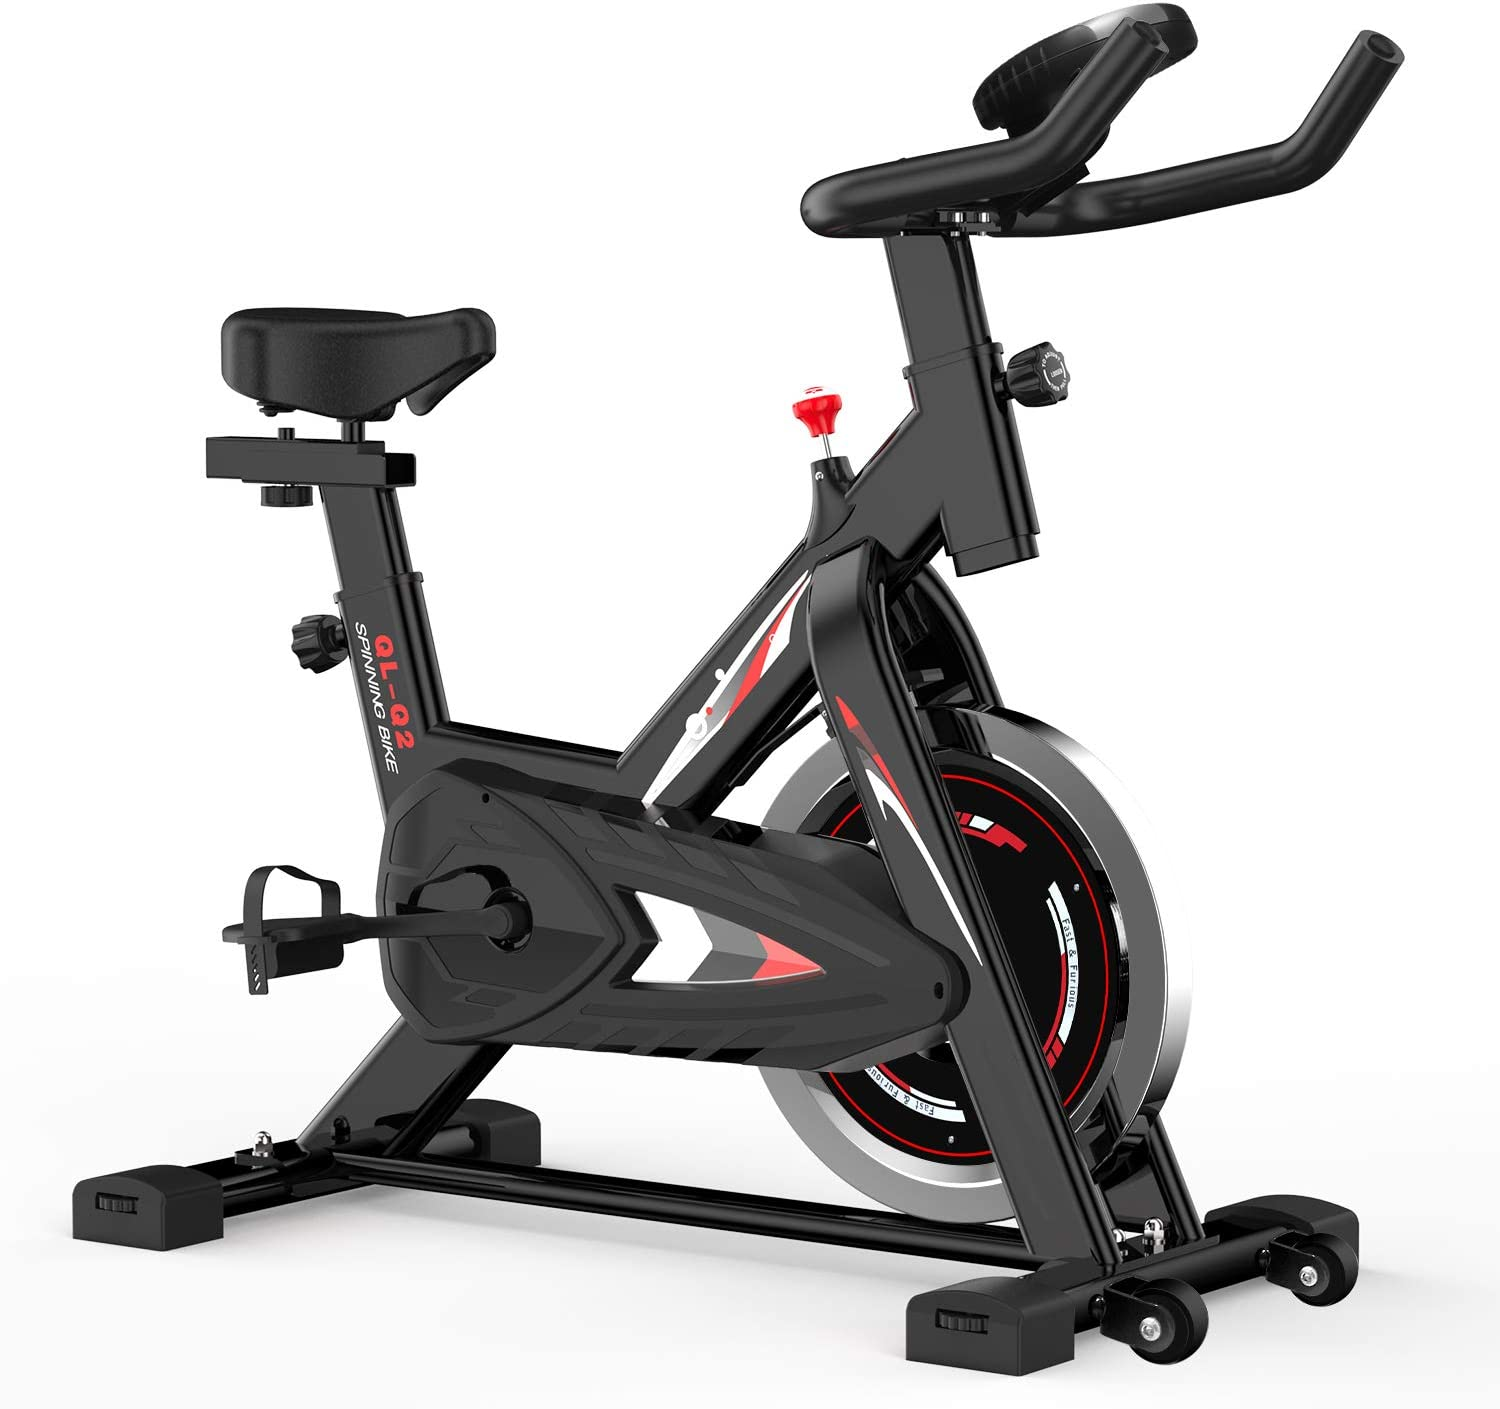 wellrun Indoor Spin Bike, Exercise Cycling Bike Stationary Bicycle Fitness Cycle Upright Excersize Bike for Home Gym Cardio Workout Machine with LCD Monitor & Tablet Holder